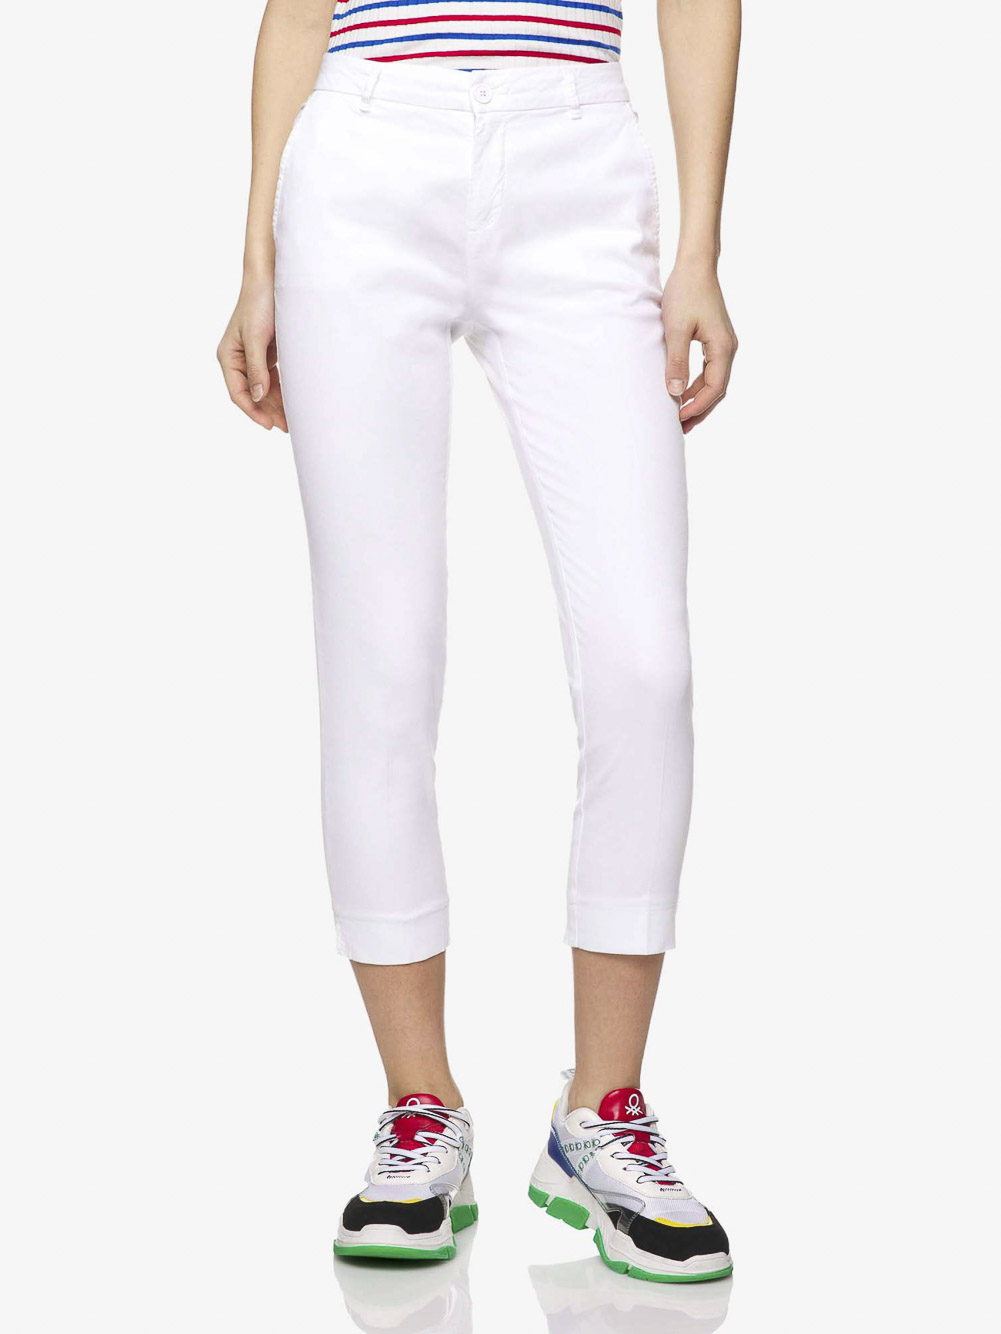 BENETTON Παντελόνι chinos 4CDR558R5 20P101